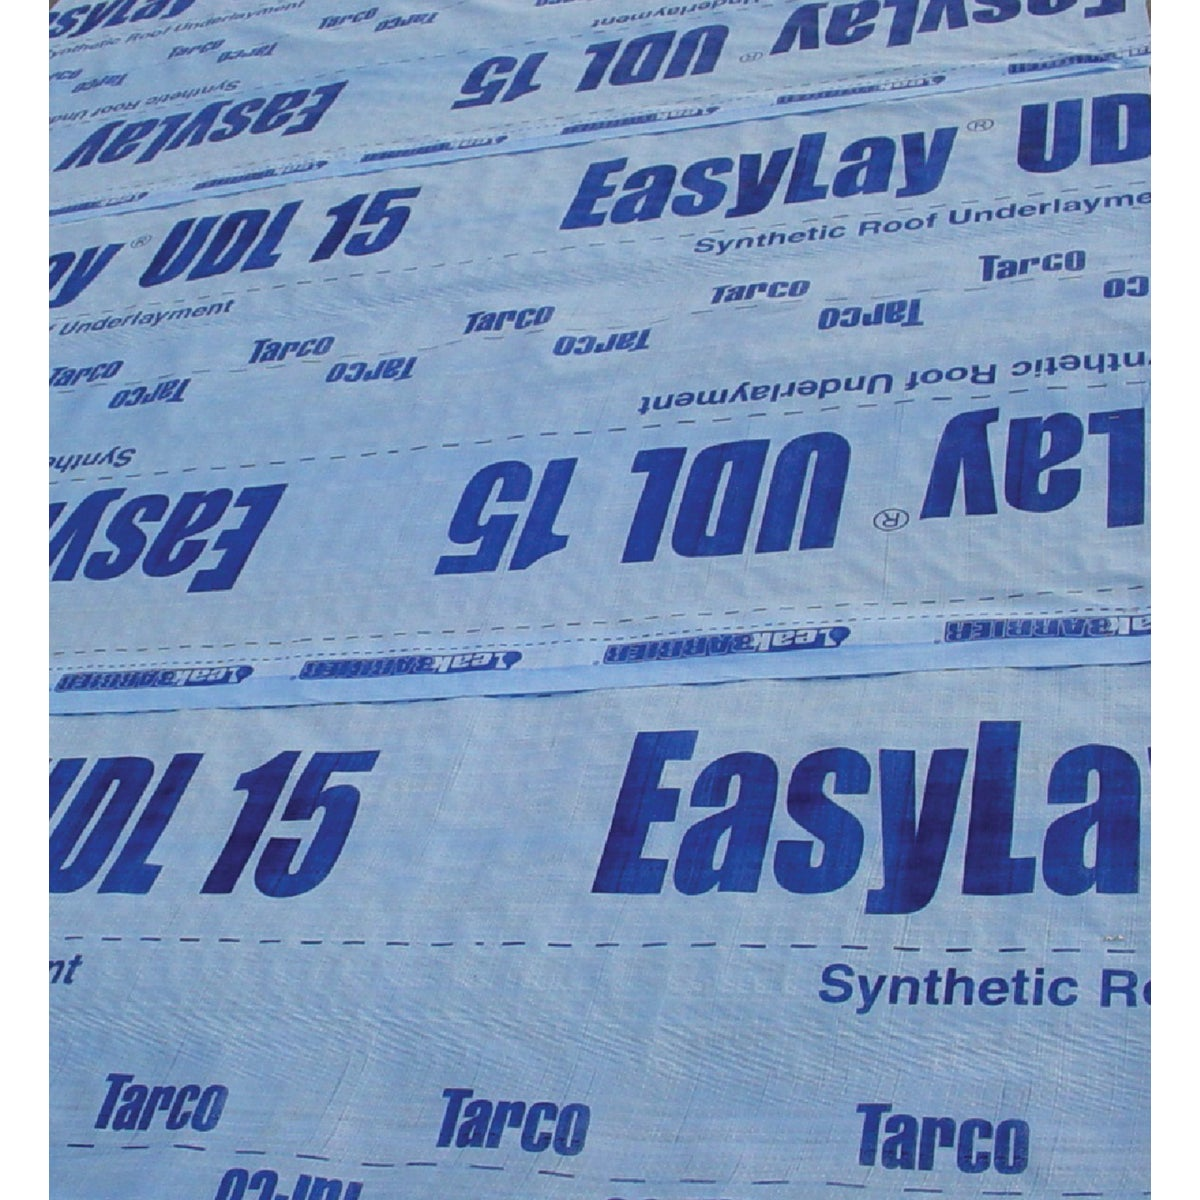 48X250 EASYLAY SYN FELT - LB324104 by Tarco Inc